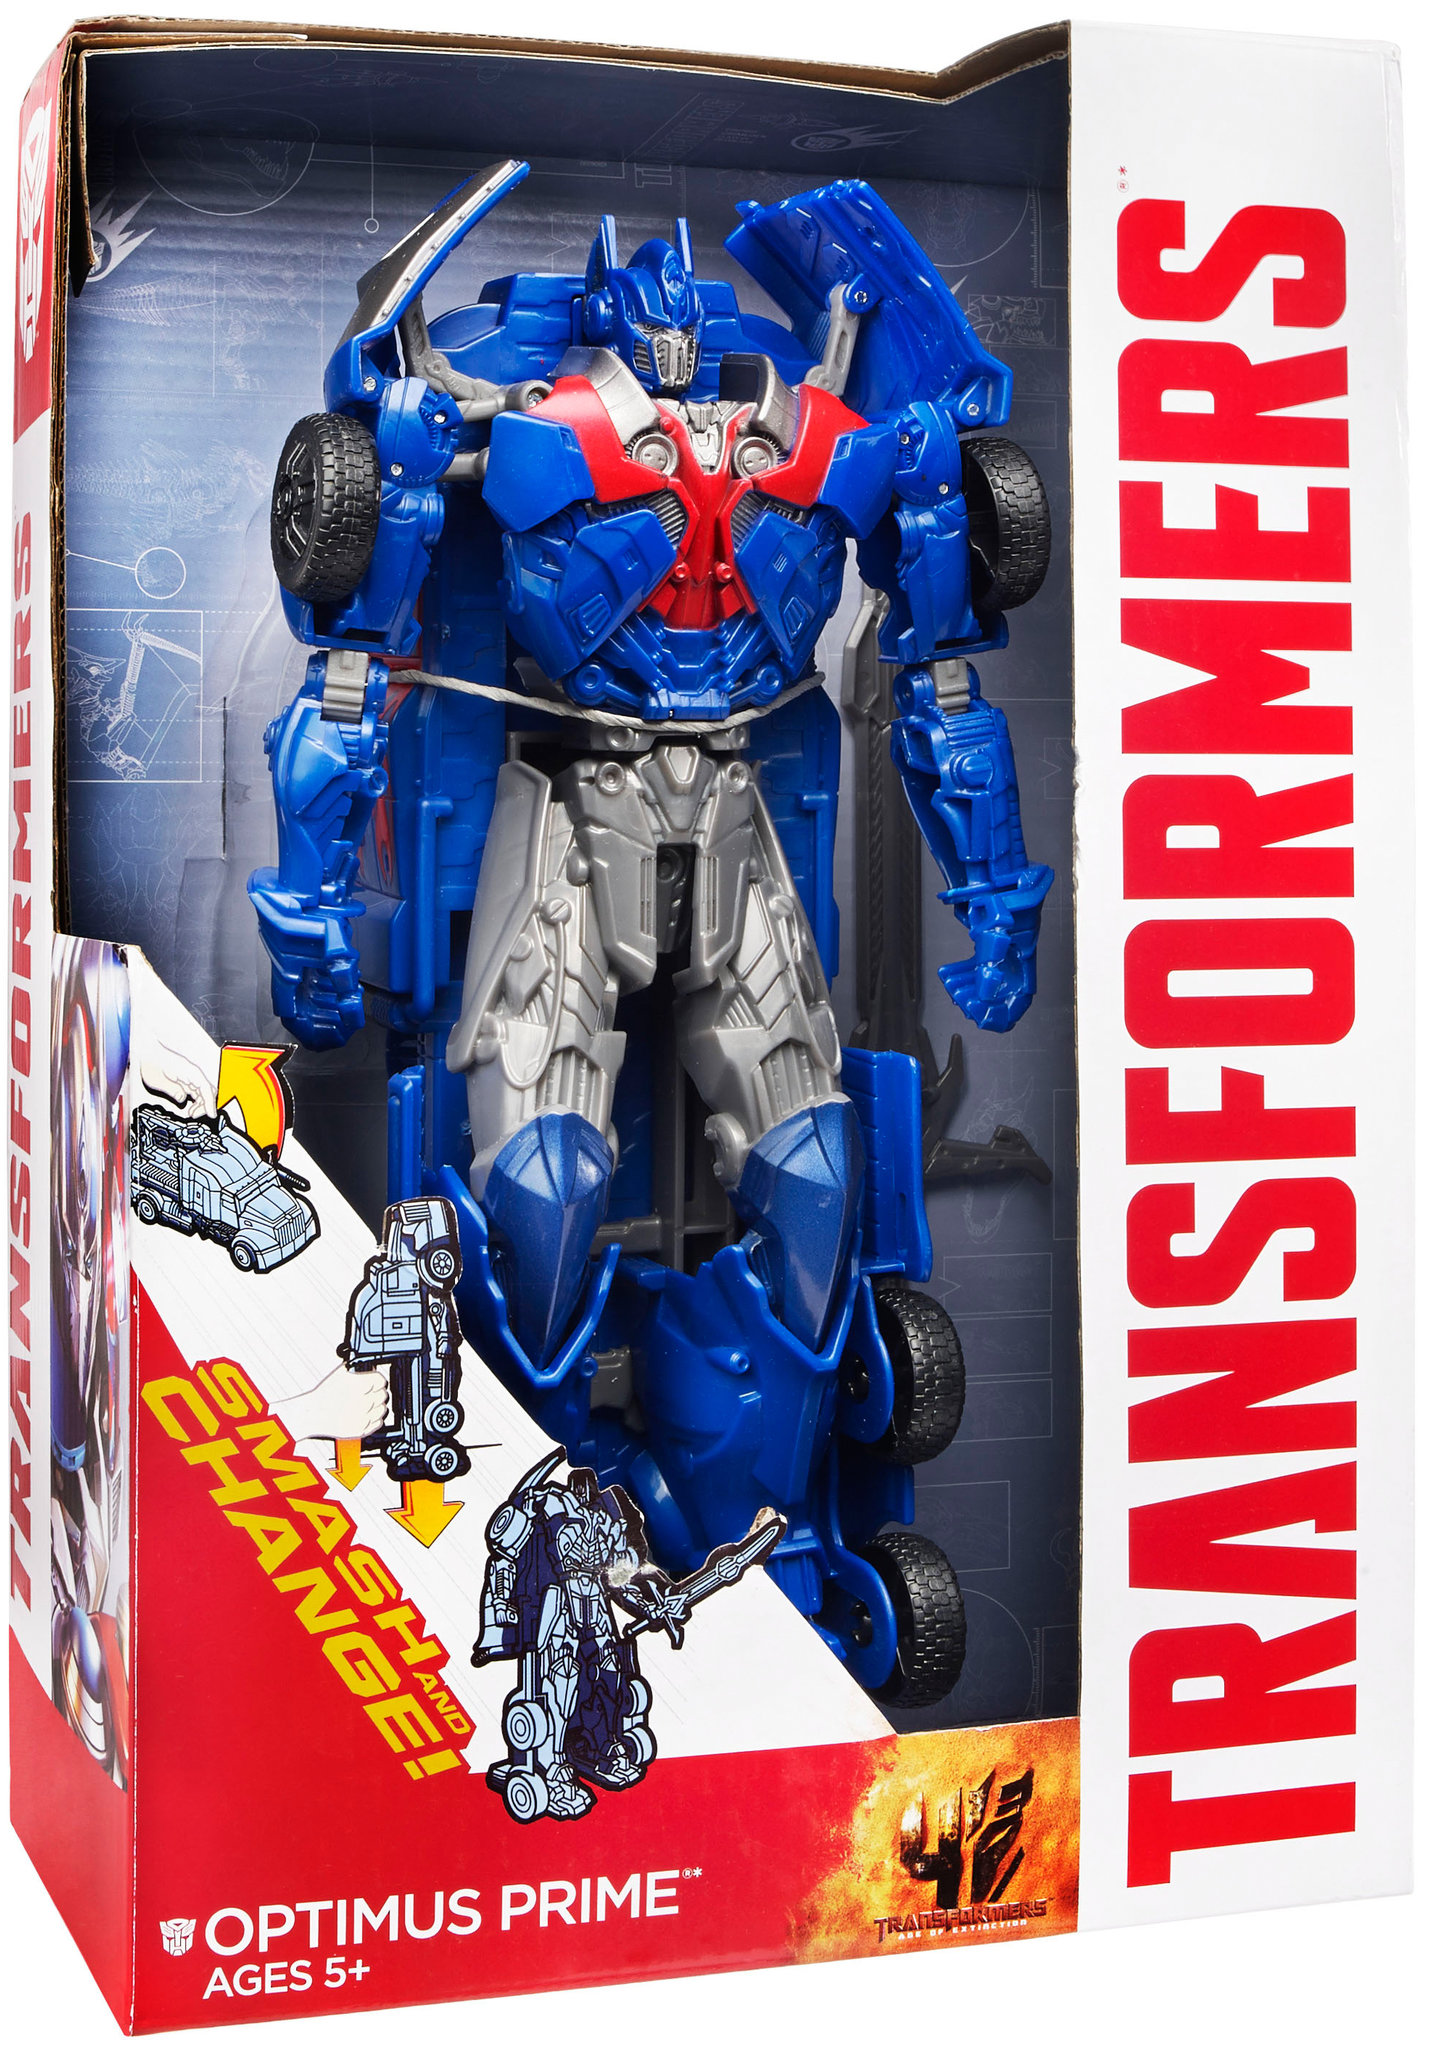 Smash and Change Optimus Prime Transformers 4 Age of Extinction toy